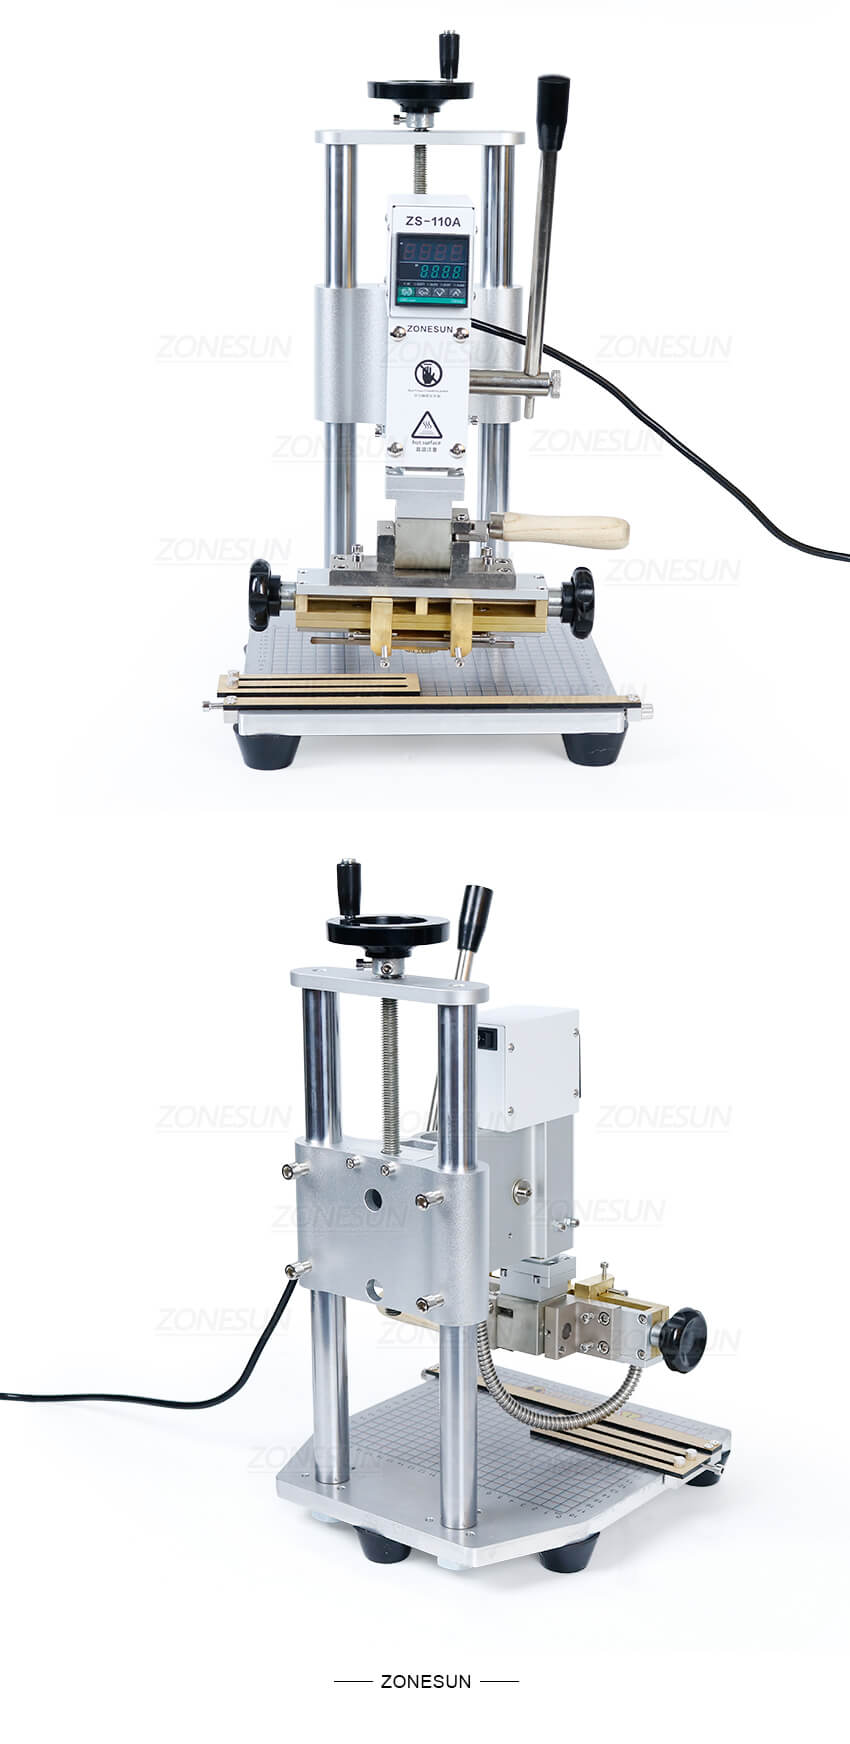 Real shot of ZS-110A Stamping Machine